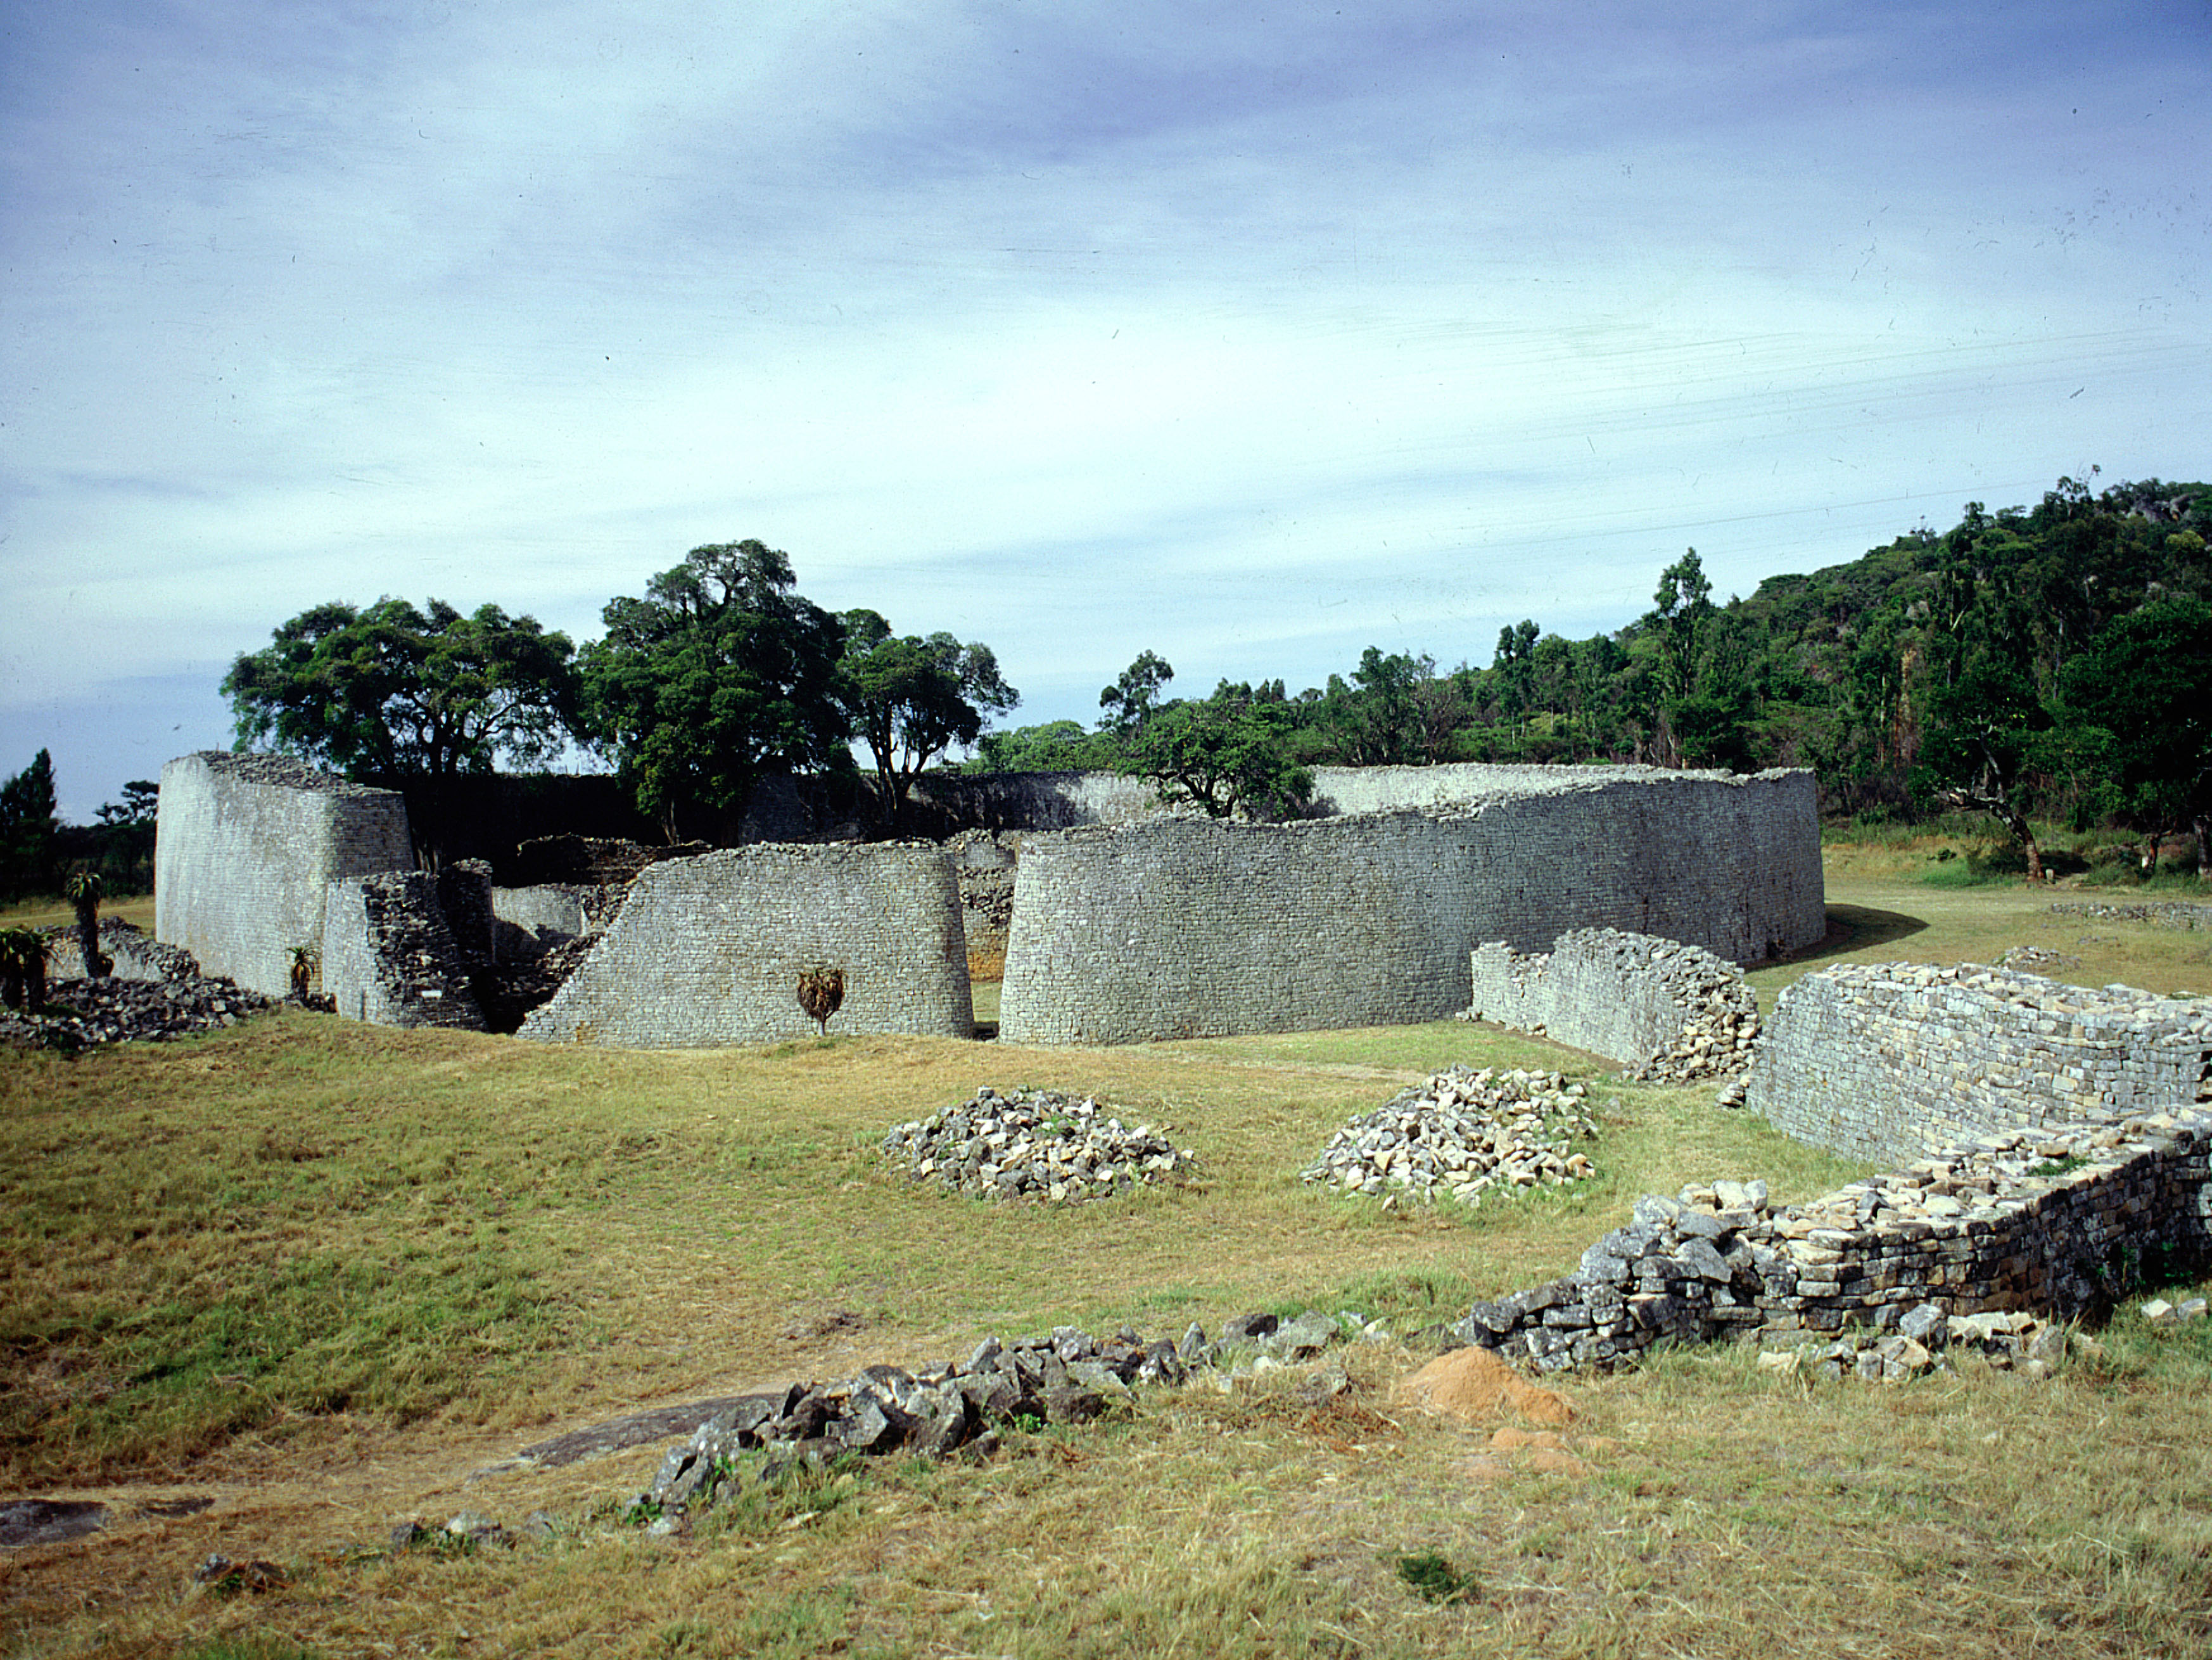 The fortification wall of great Zimbabwe